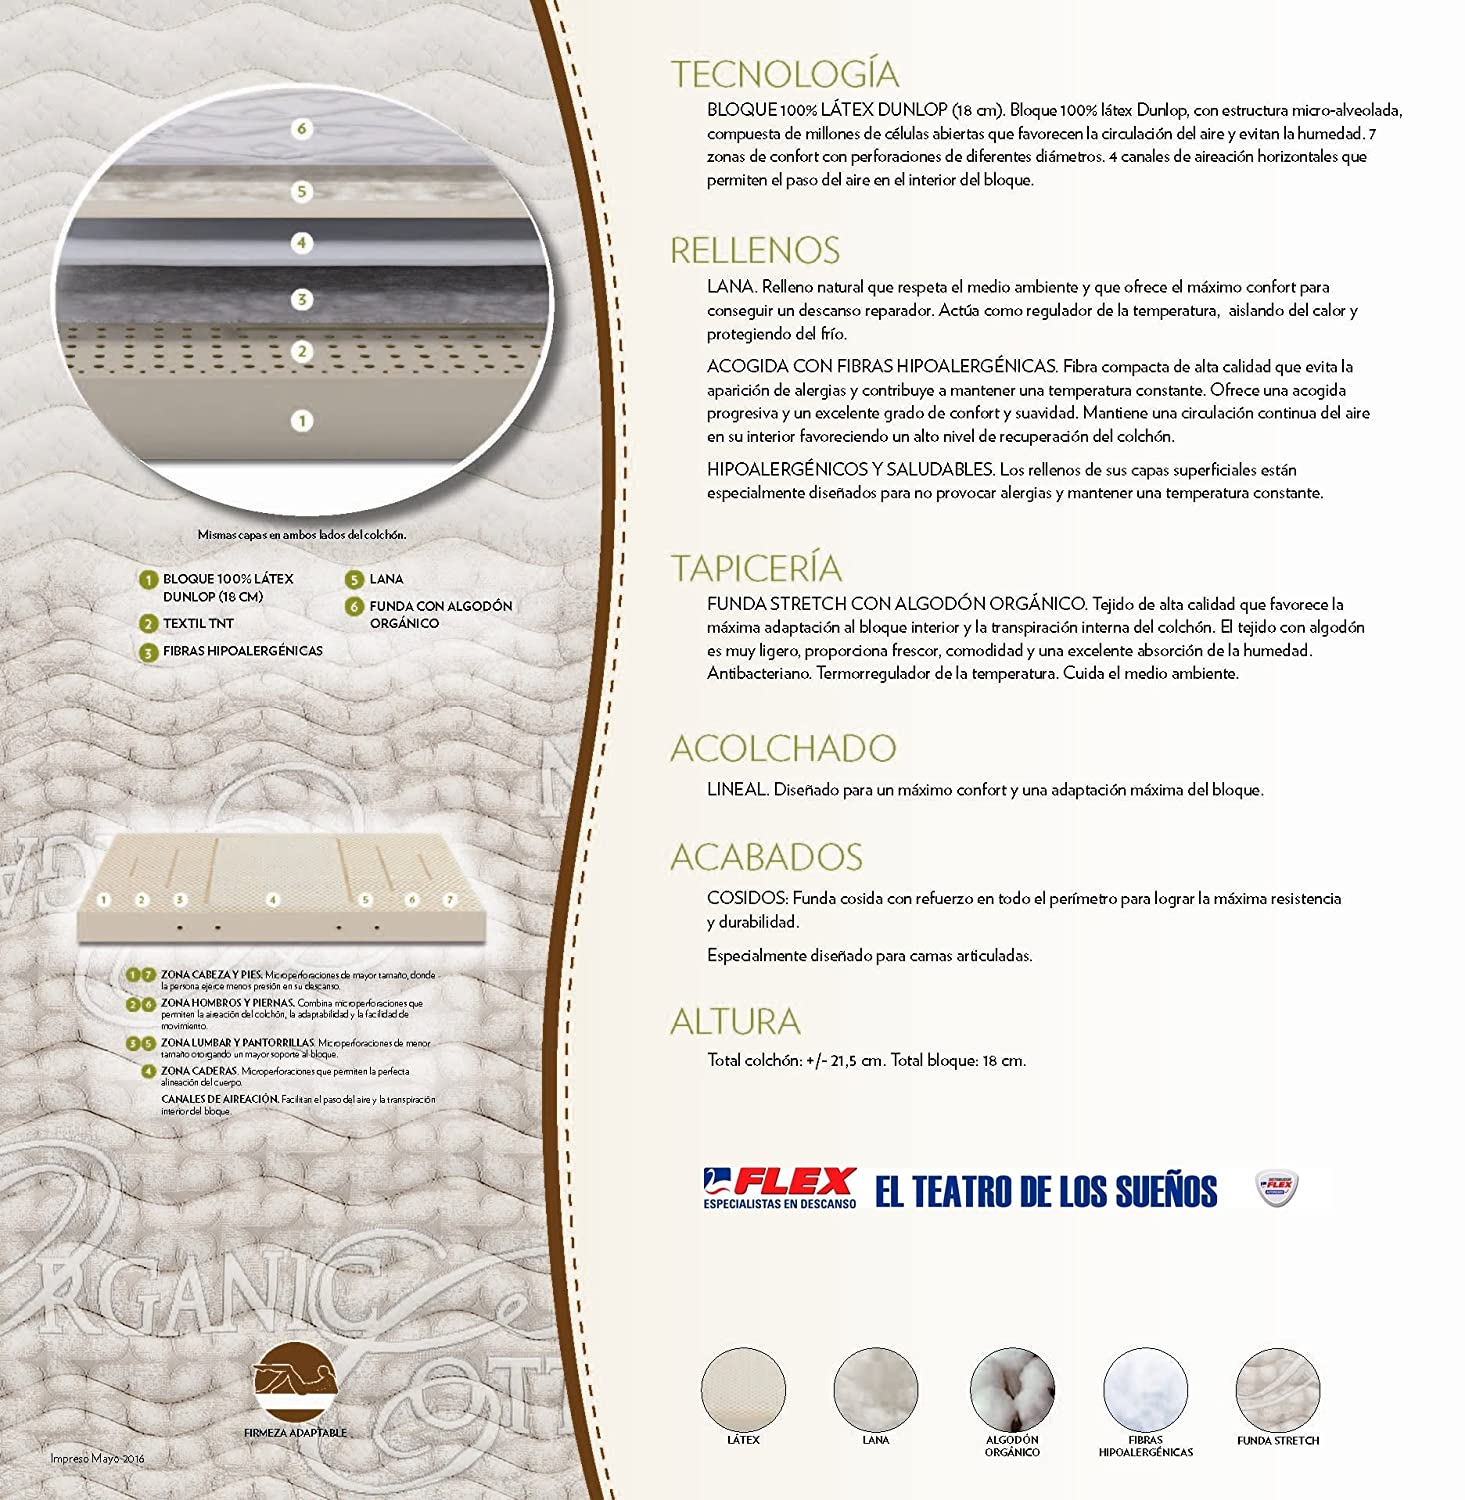 Dorwin 2454140031 - colchón de Latex enfundado Natur talalay Art gem 90x182 cm: Amazon.es: Hogar